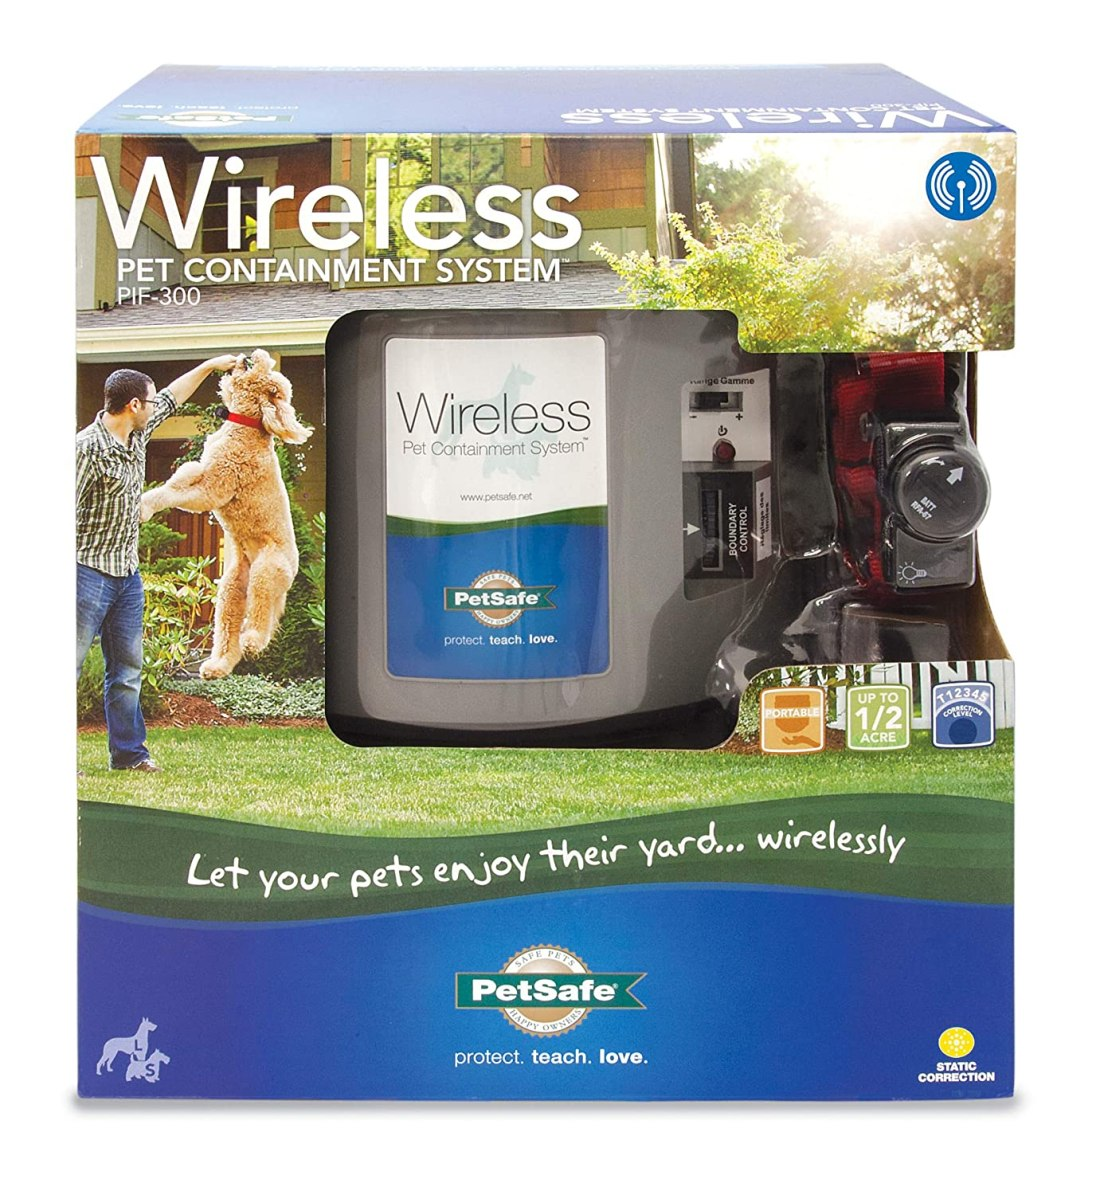 PetSafe Wireless Fence Pet Containmeant System Reviews 200